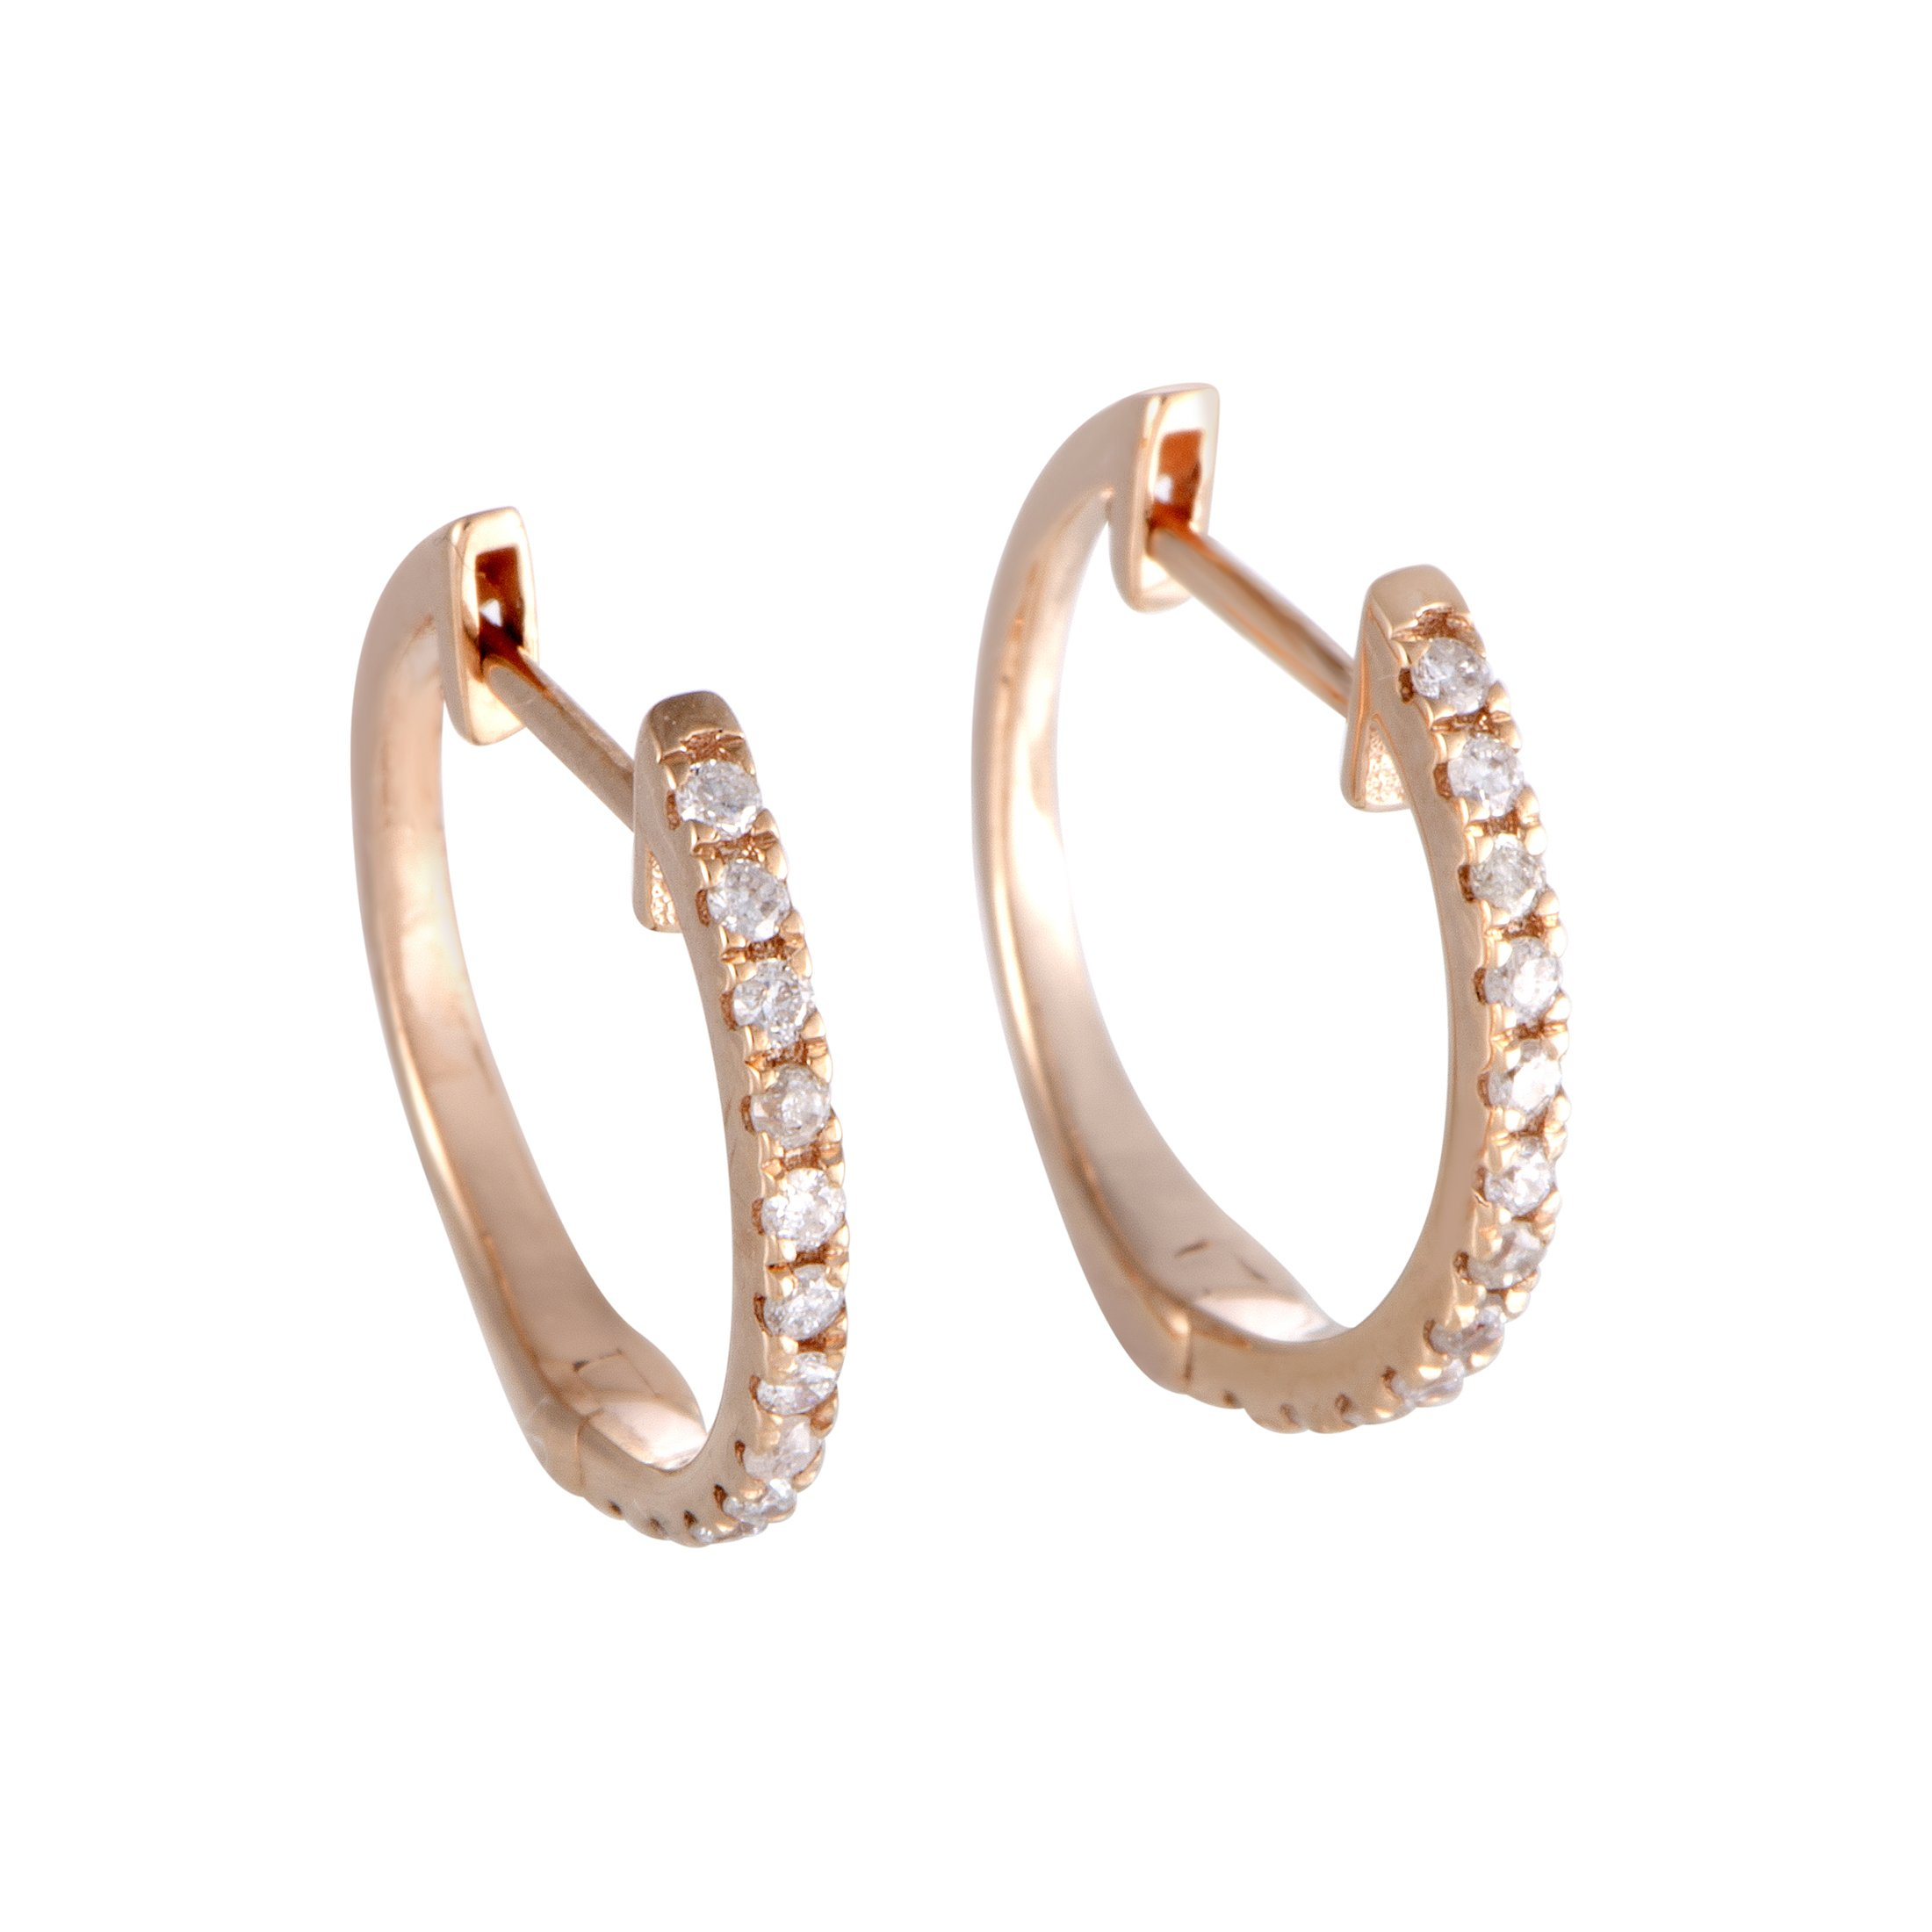 Sparkling 0.5'' Diamond Hoop Earrings in 10K Rose Gold; 0.20 Carats of Round, White Diamonds (rose-gold)